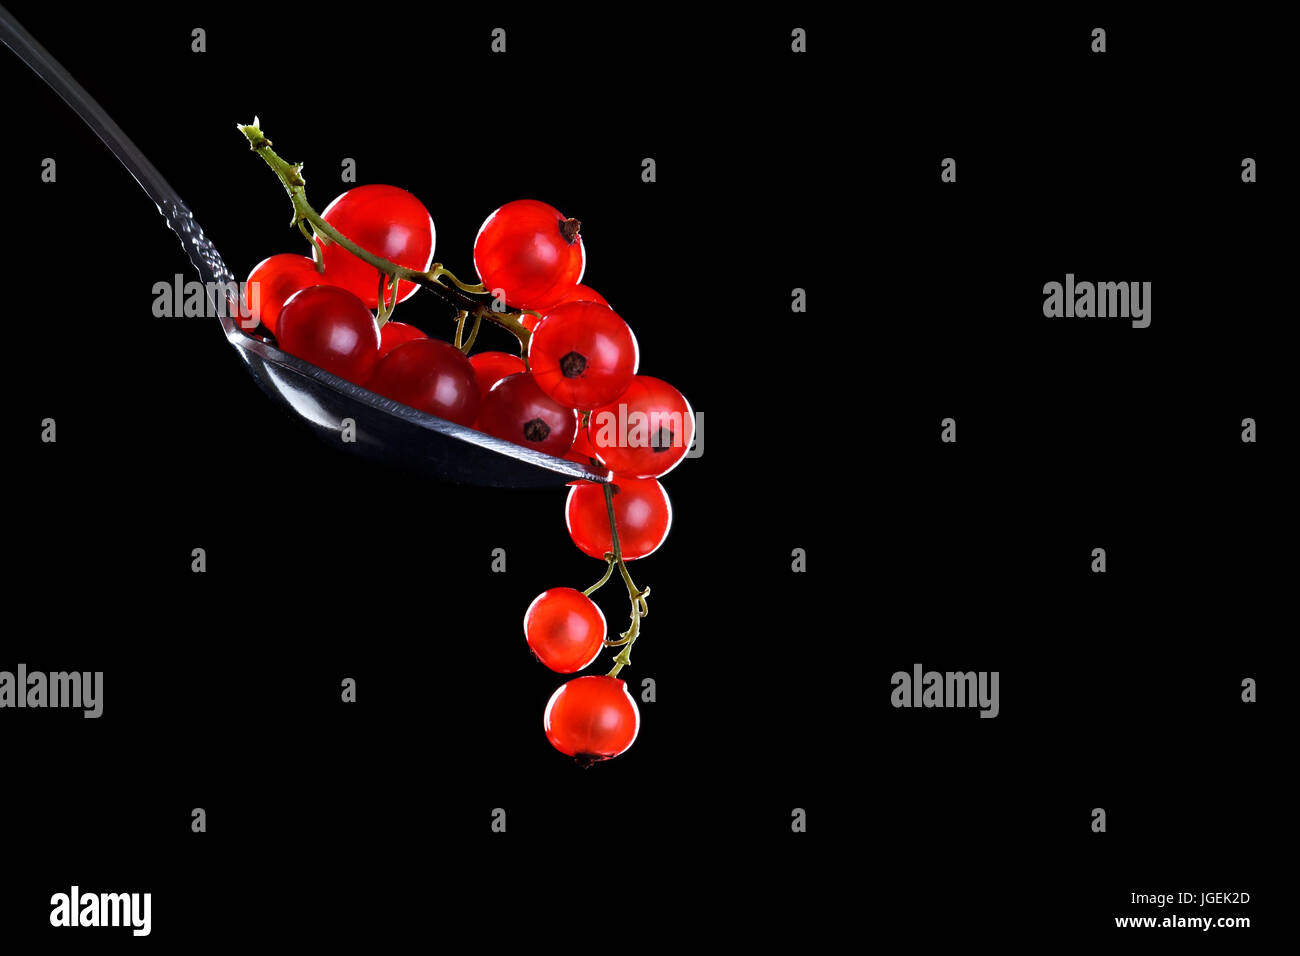 Ripe red currant berries on a black background. - Stock Image